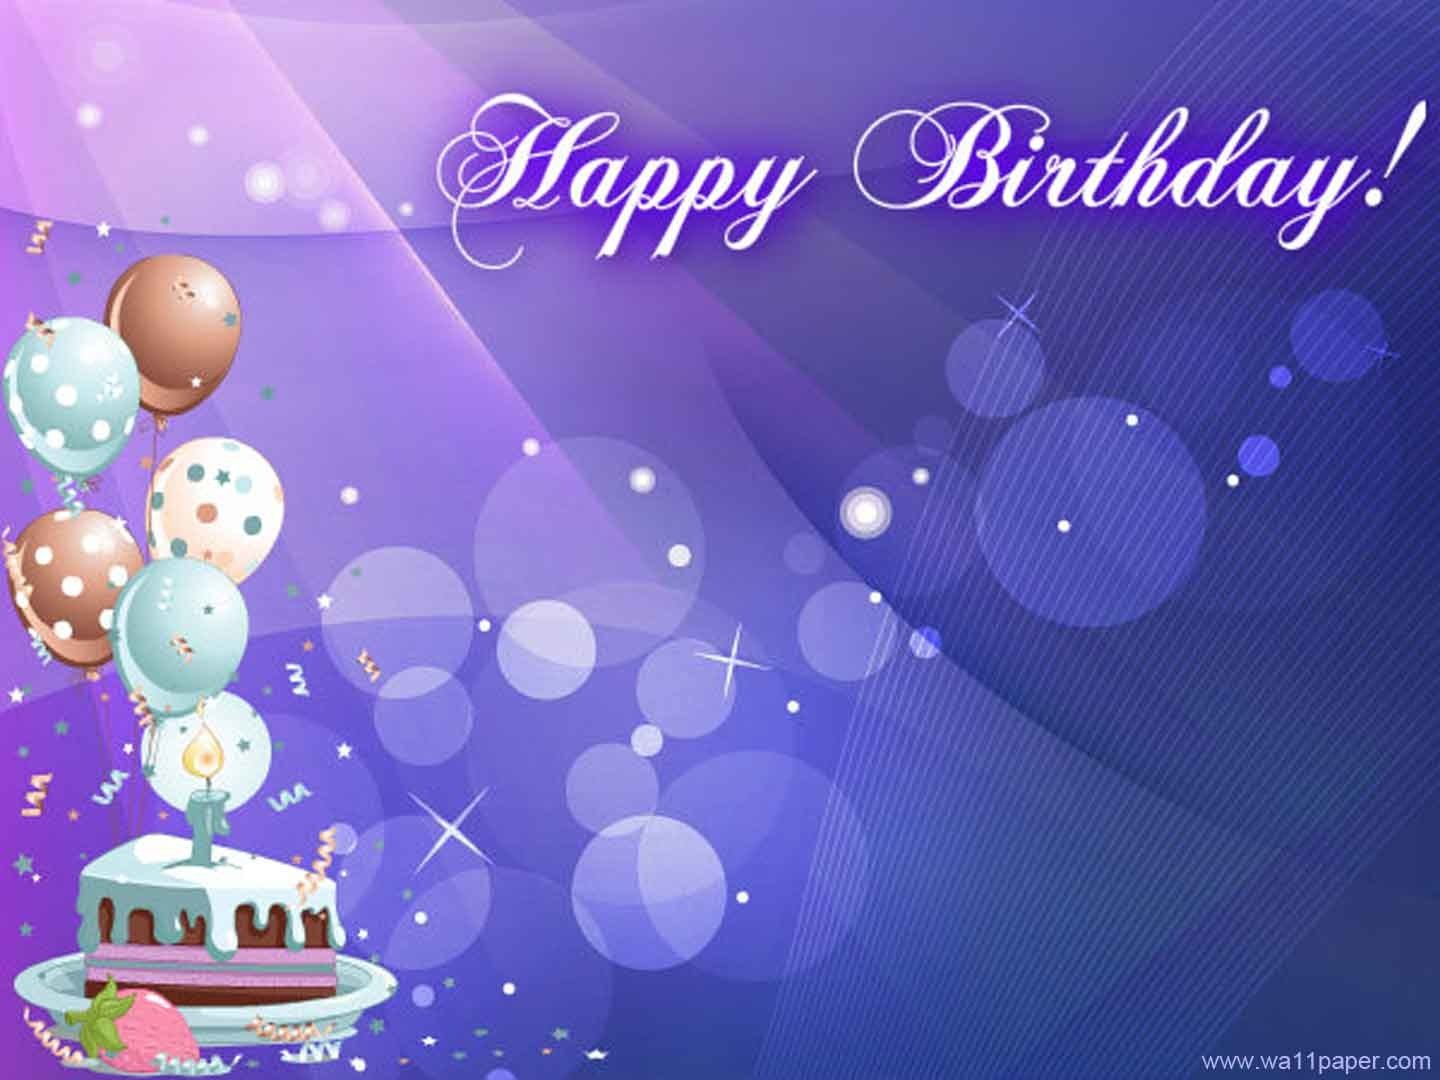 HD Wallpapers Of Birthday